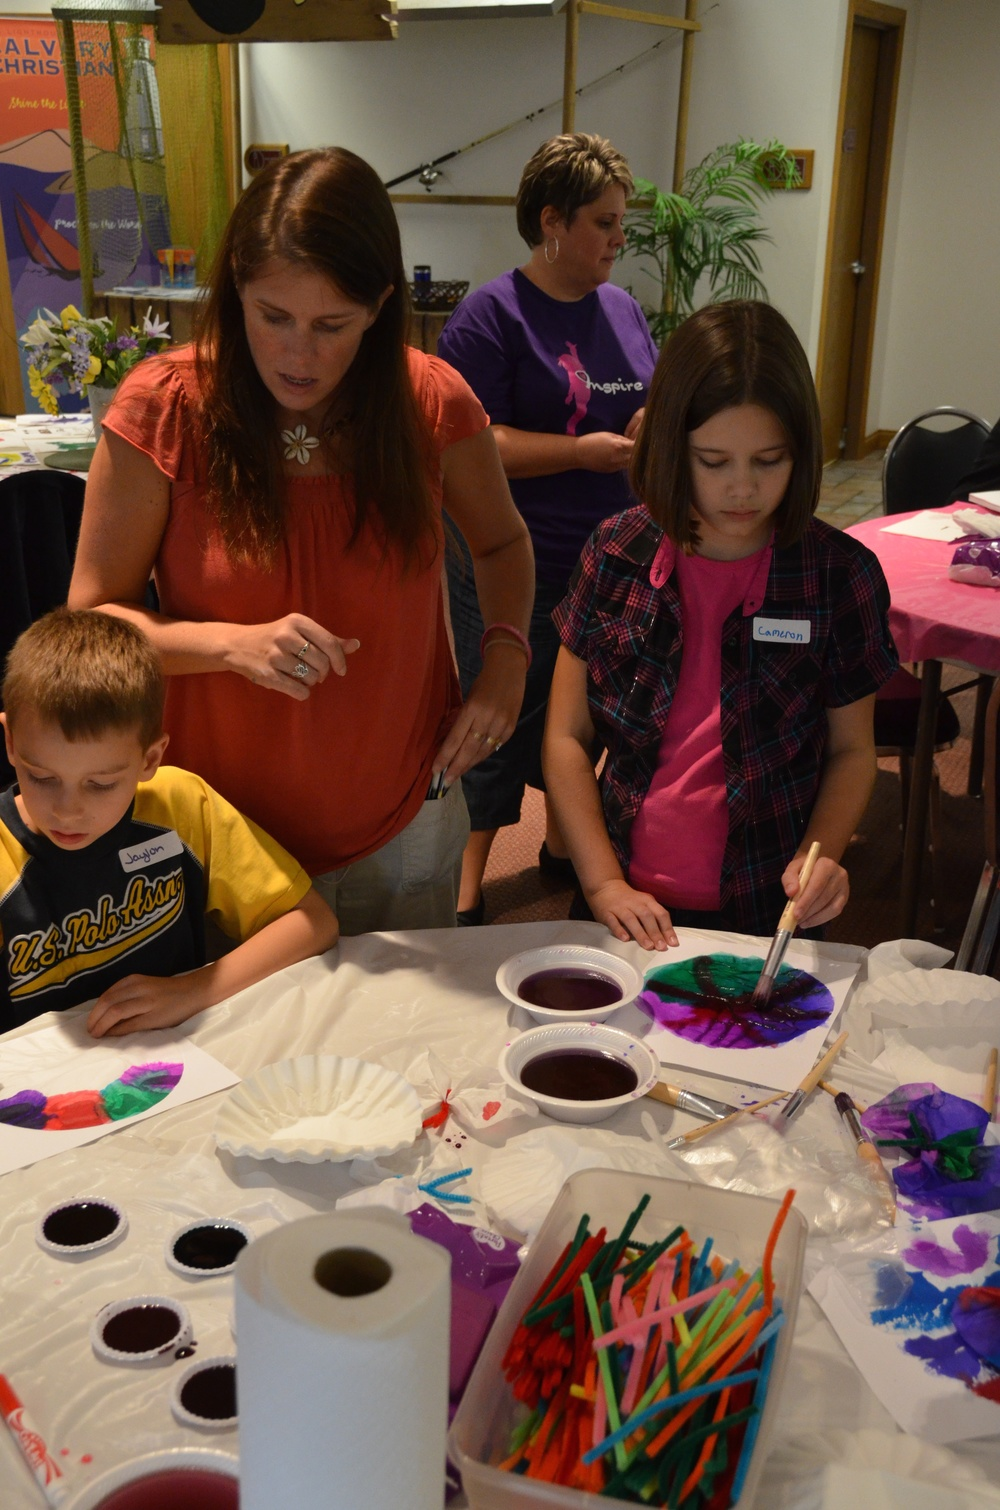 KIds ARt Church 9 12 2011   95248.jpg